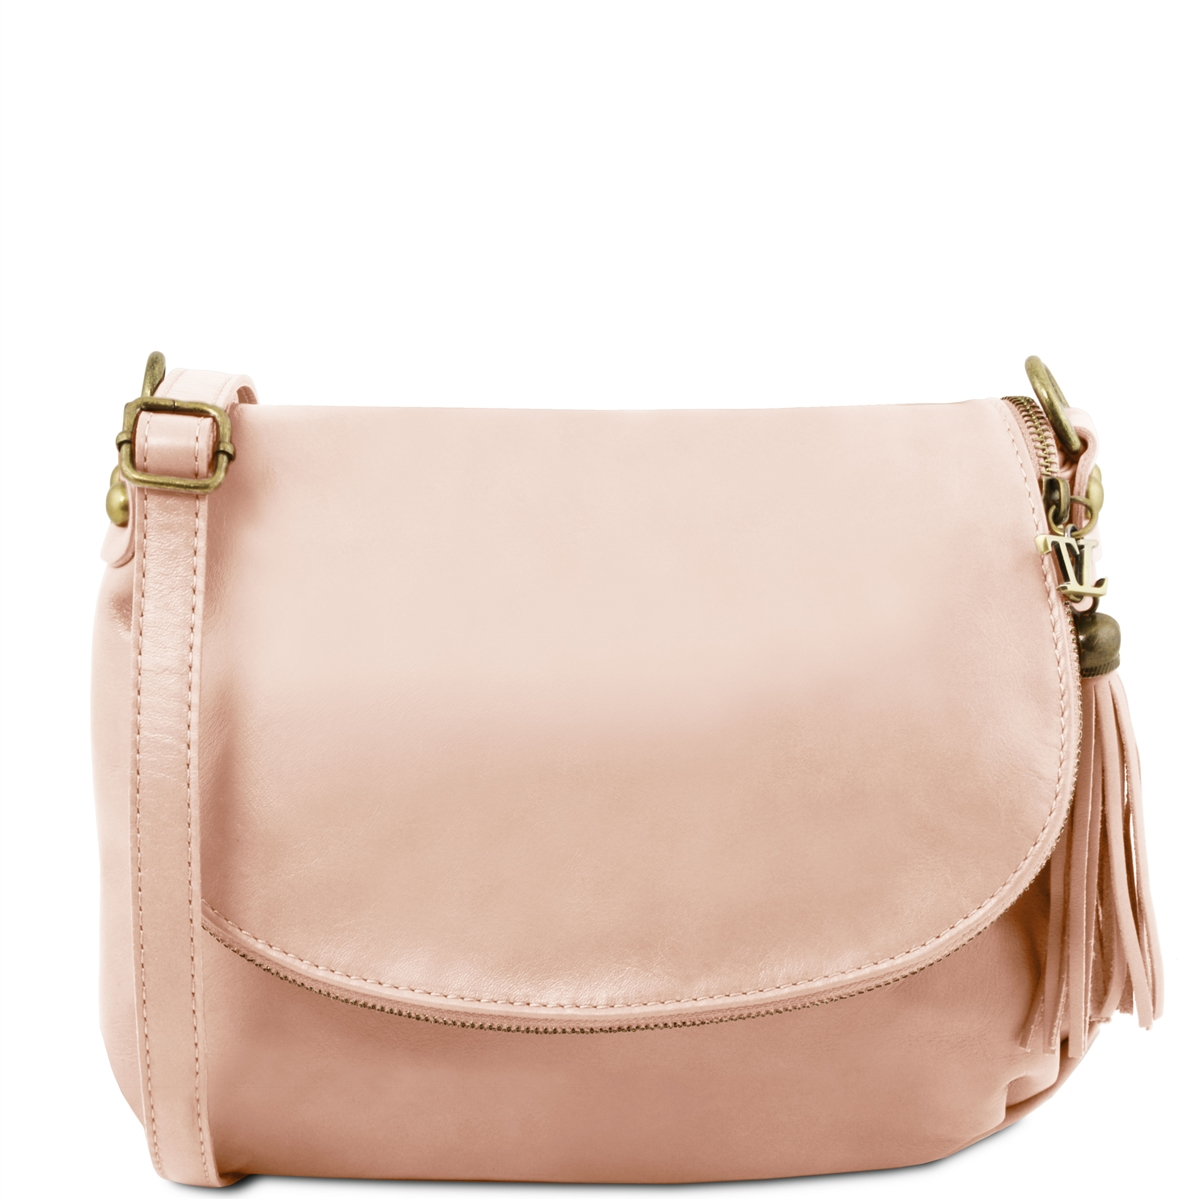 a7035b46232f Tuscany Leather TL141223 Small Soft leather shoulder bag - Nude